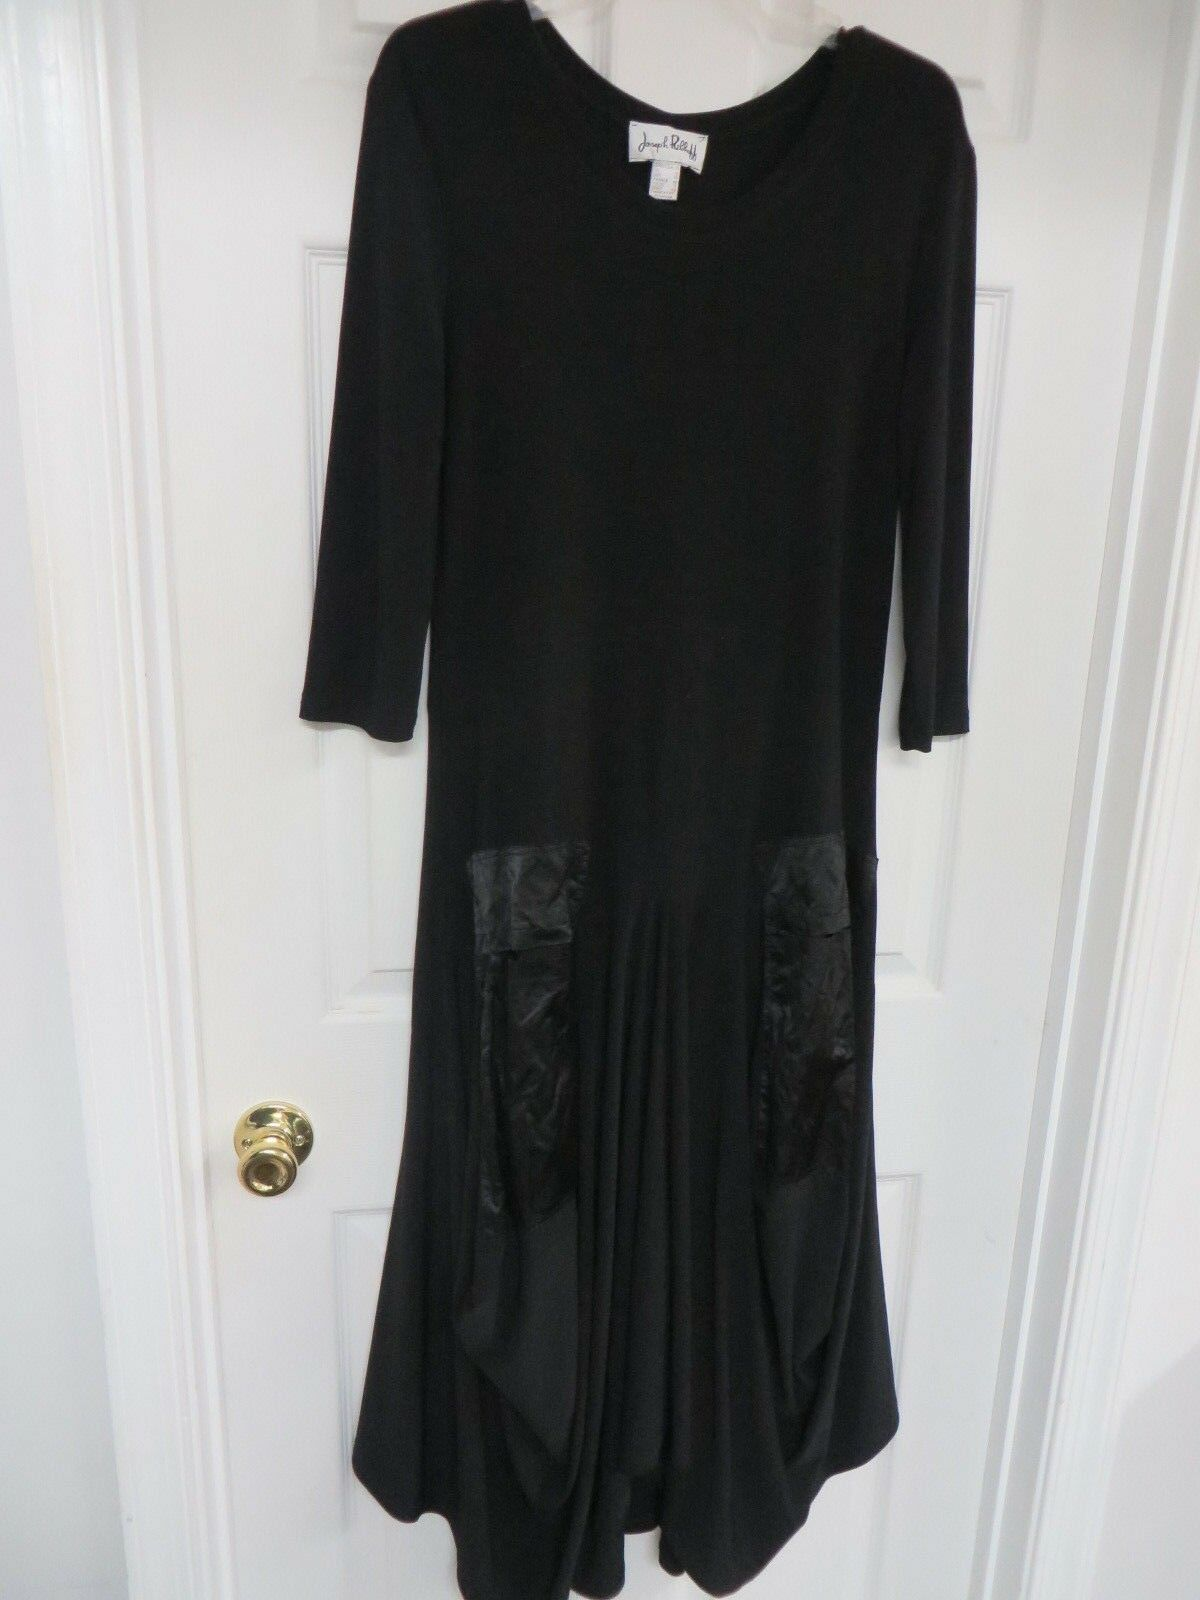 Joseph Ribkoff Knit 3 4 sleeve  Combo Pockets Draped skirt Long schwarz Dress US10